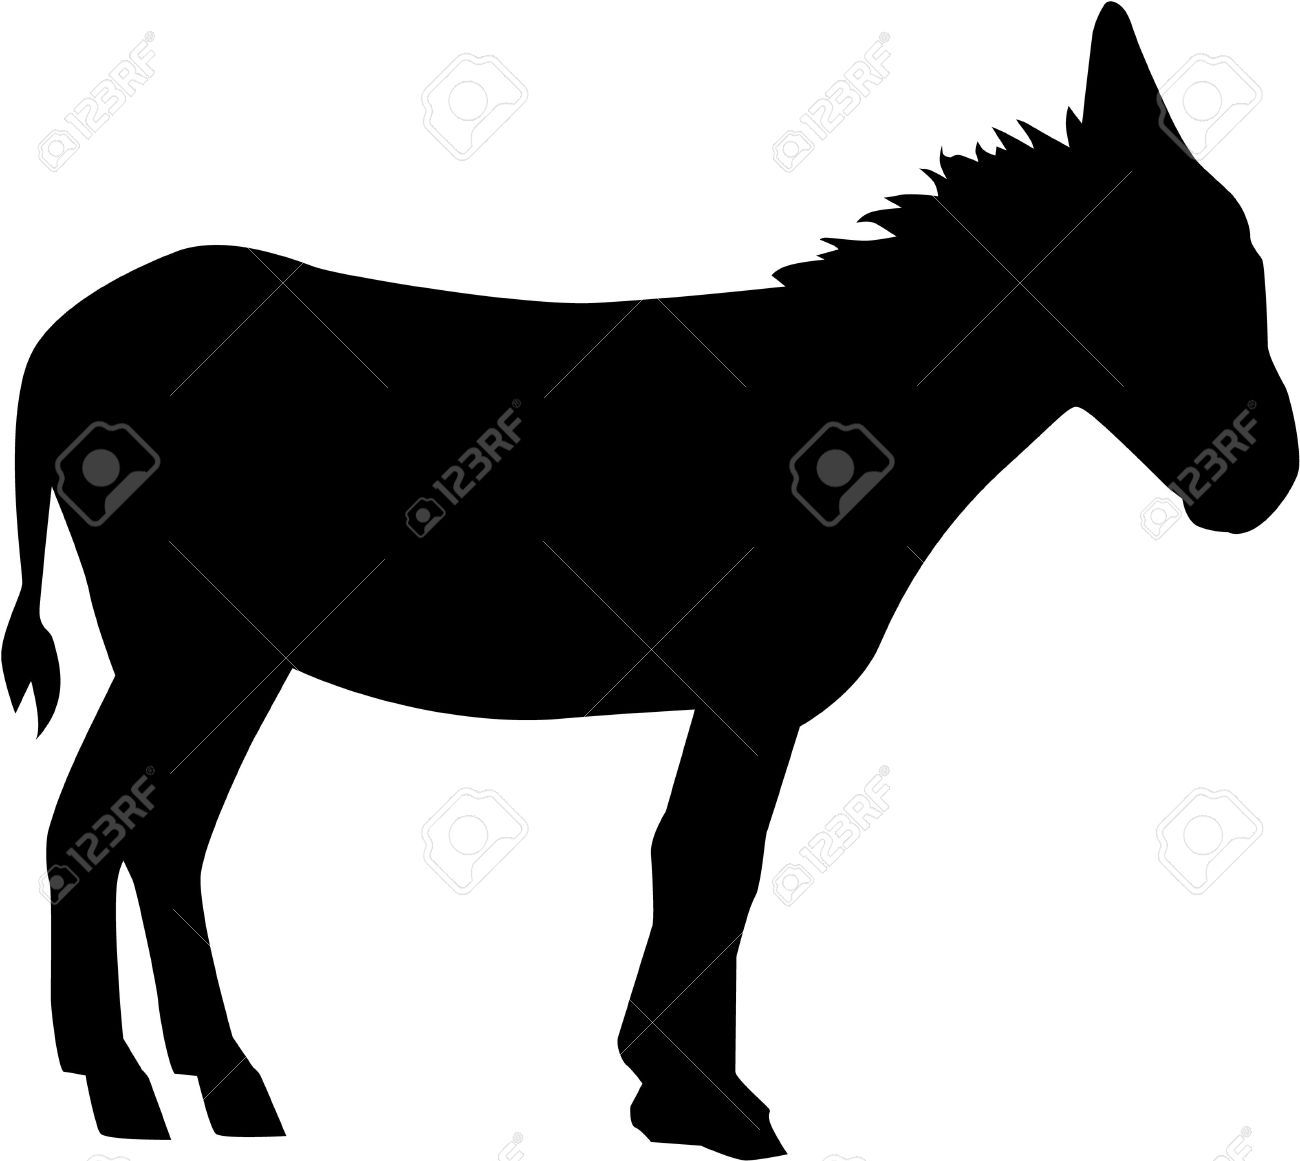 Donkey clipart black and white vector freeuse library Donkey clipart black and white 4 » Clipart Portal vector freeuse library